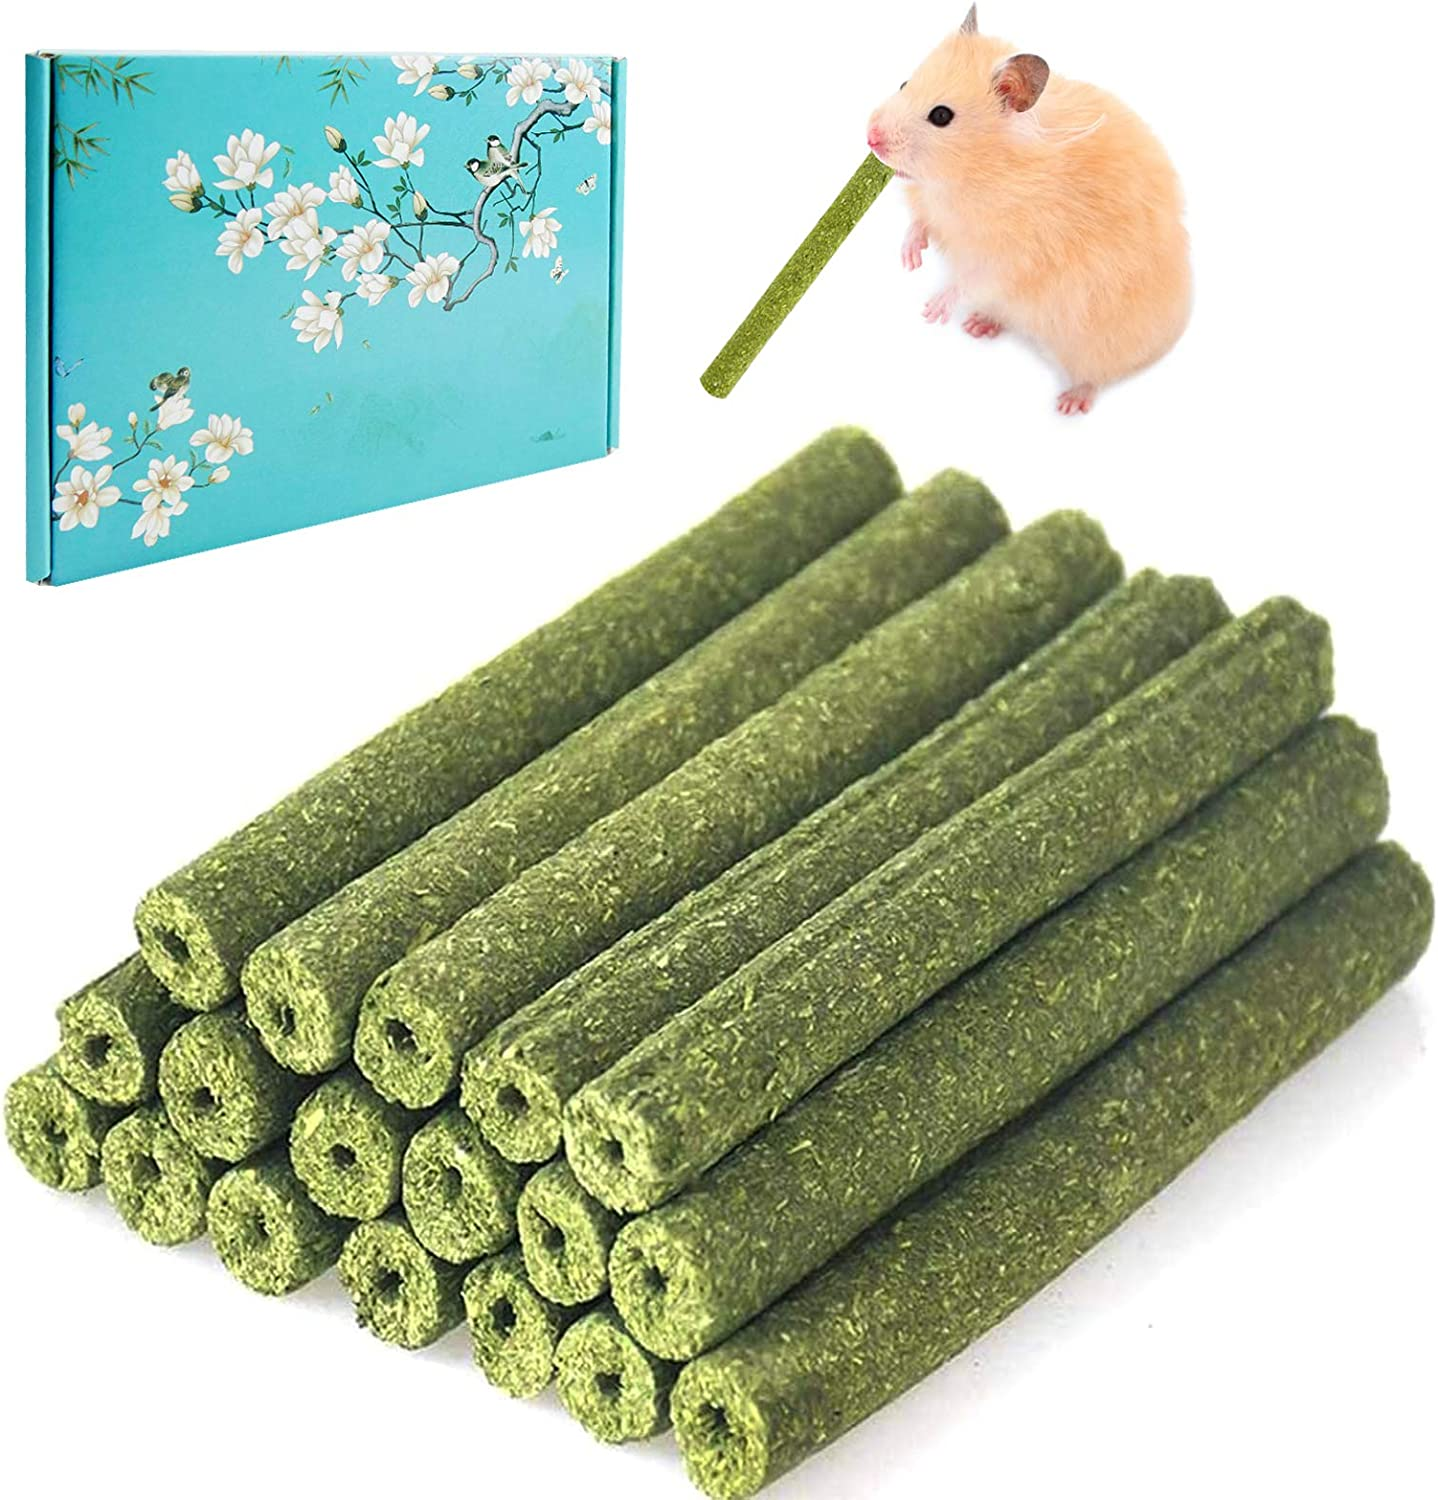 30 PCS Timothy Hay Sticks for Rabbits Guinea Pig Hamsters Chinchilla Bunny Chew Toys for Teeth Treats Accessories